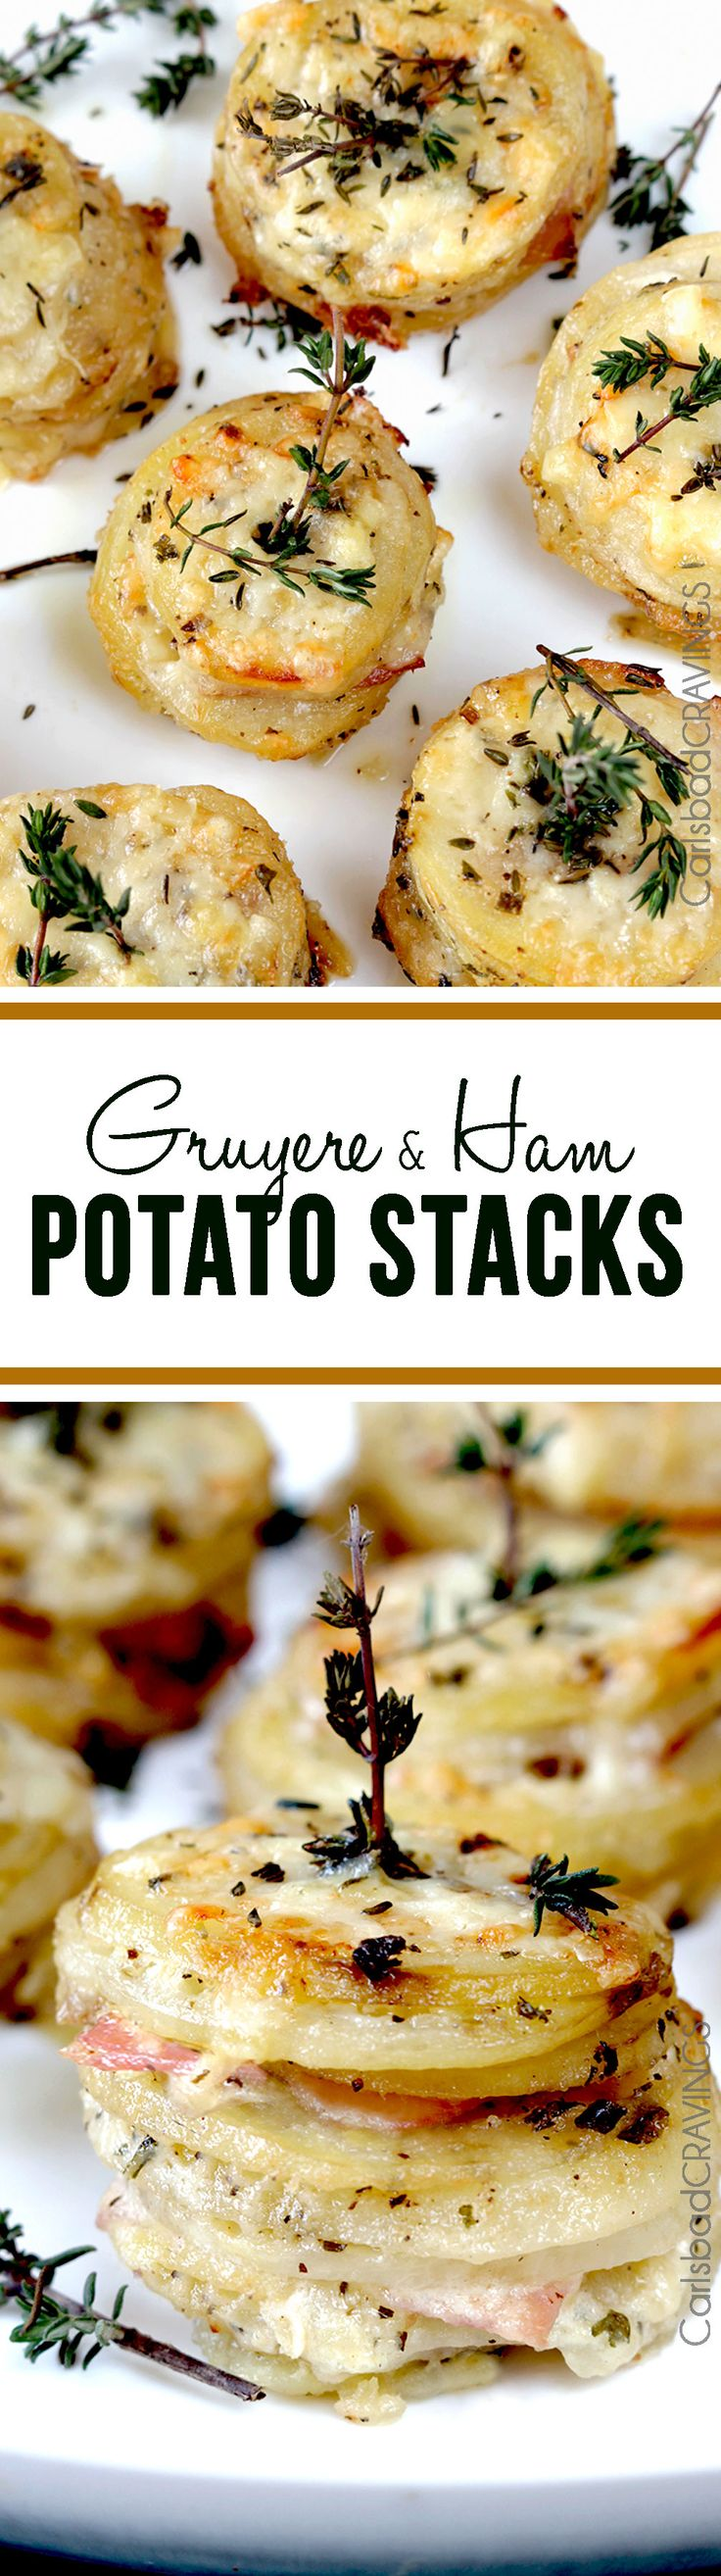 Gruyere and Ham Potato Stacks | If you can slice and layer, than you can make these cheesy, creamy tender potatoes layered with buttery herb potatoes, Gruyere and ham - the perfect insanely delicious special occasion side! #potatoes #potatoside #scallopedpotatoes #augratinpotatoes #stackedpotatoes